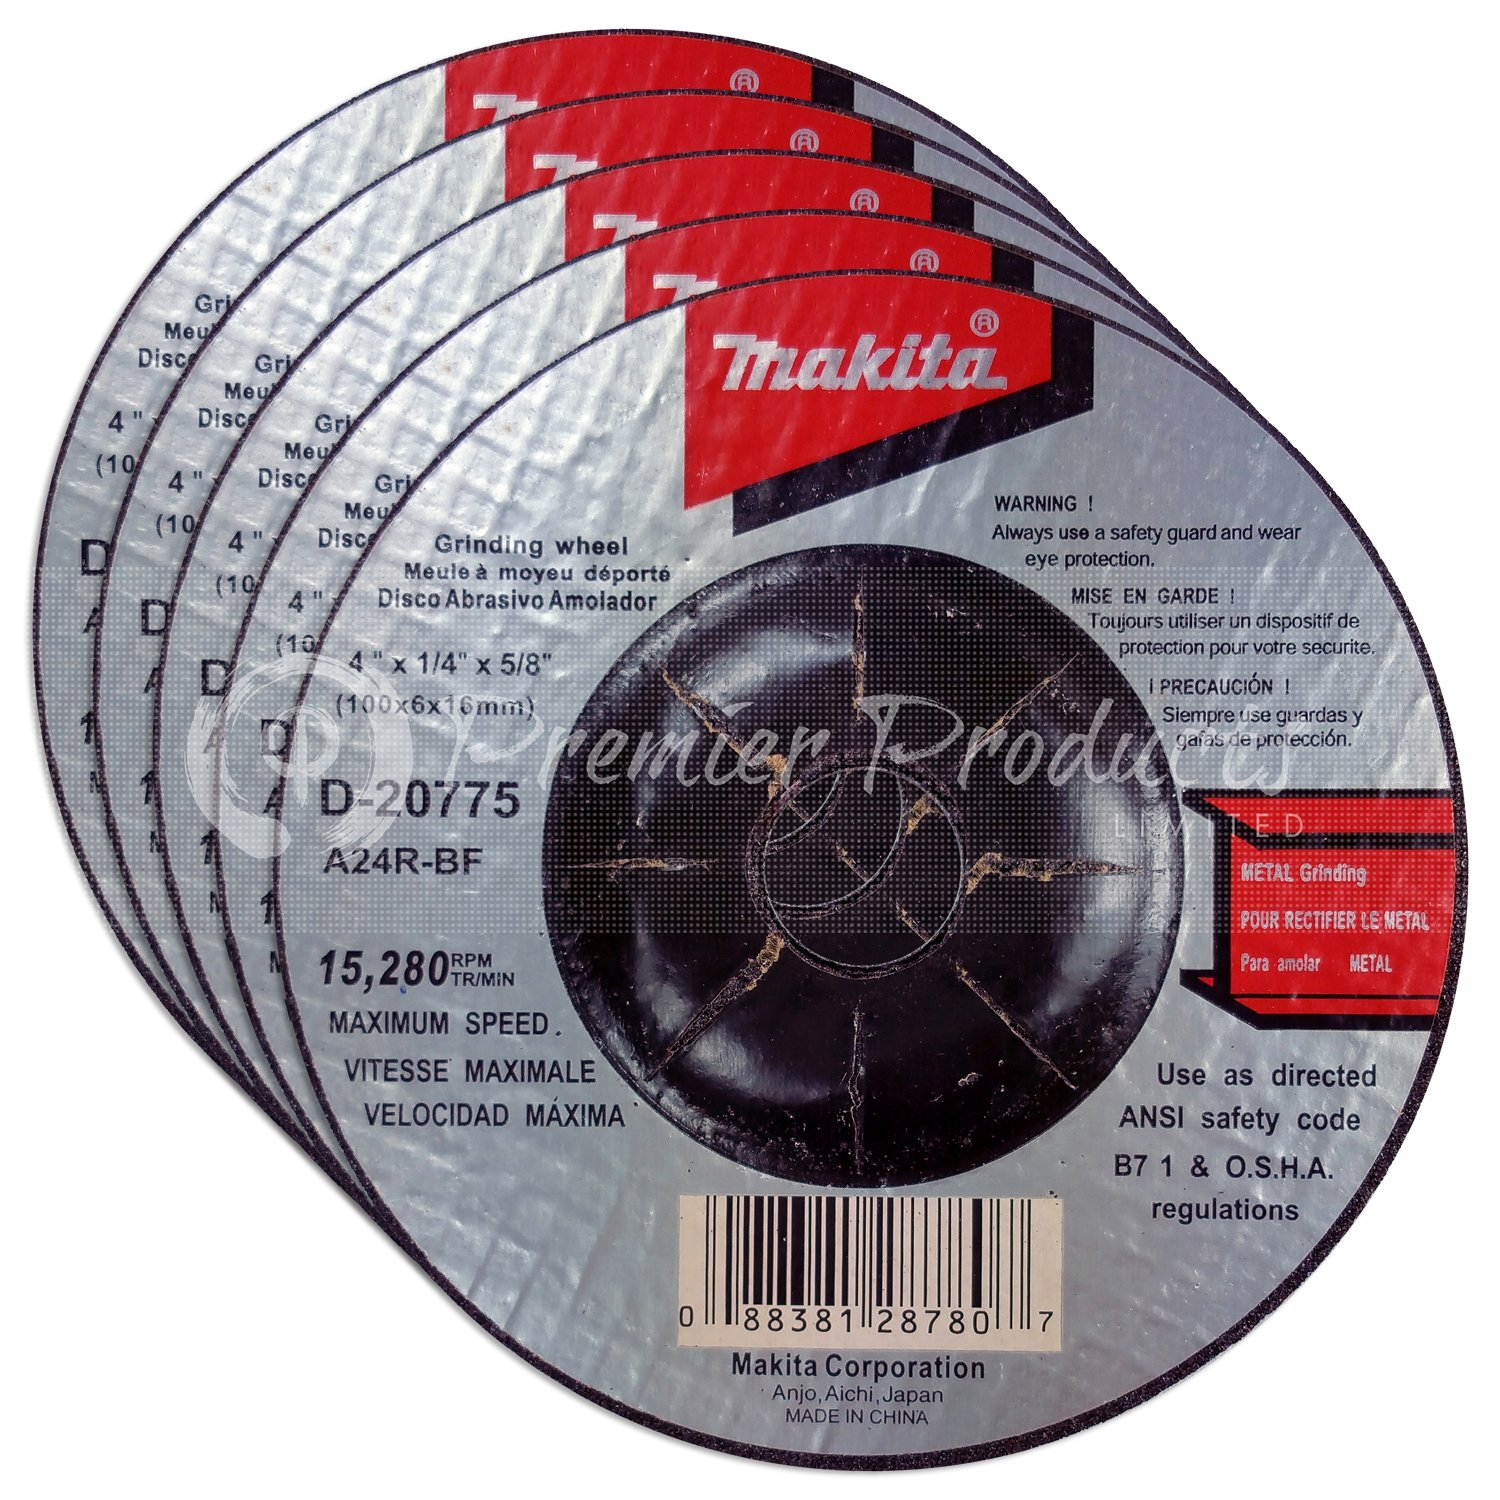 Makita 5 Pack - 4 Inch Grinding Wheel For Grinders - Aggressive Grinding For Metal - 4'' x 1/4 x 5/8-Inch   Depressed